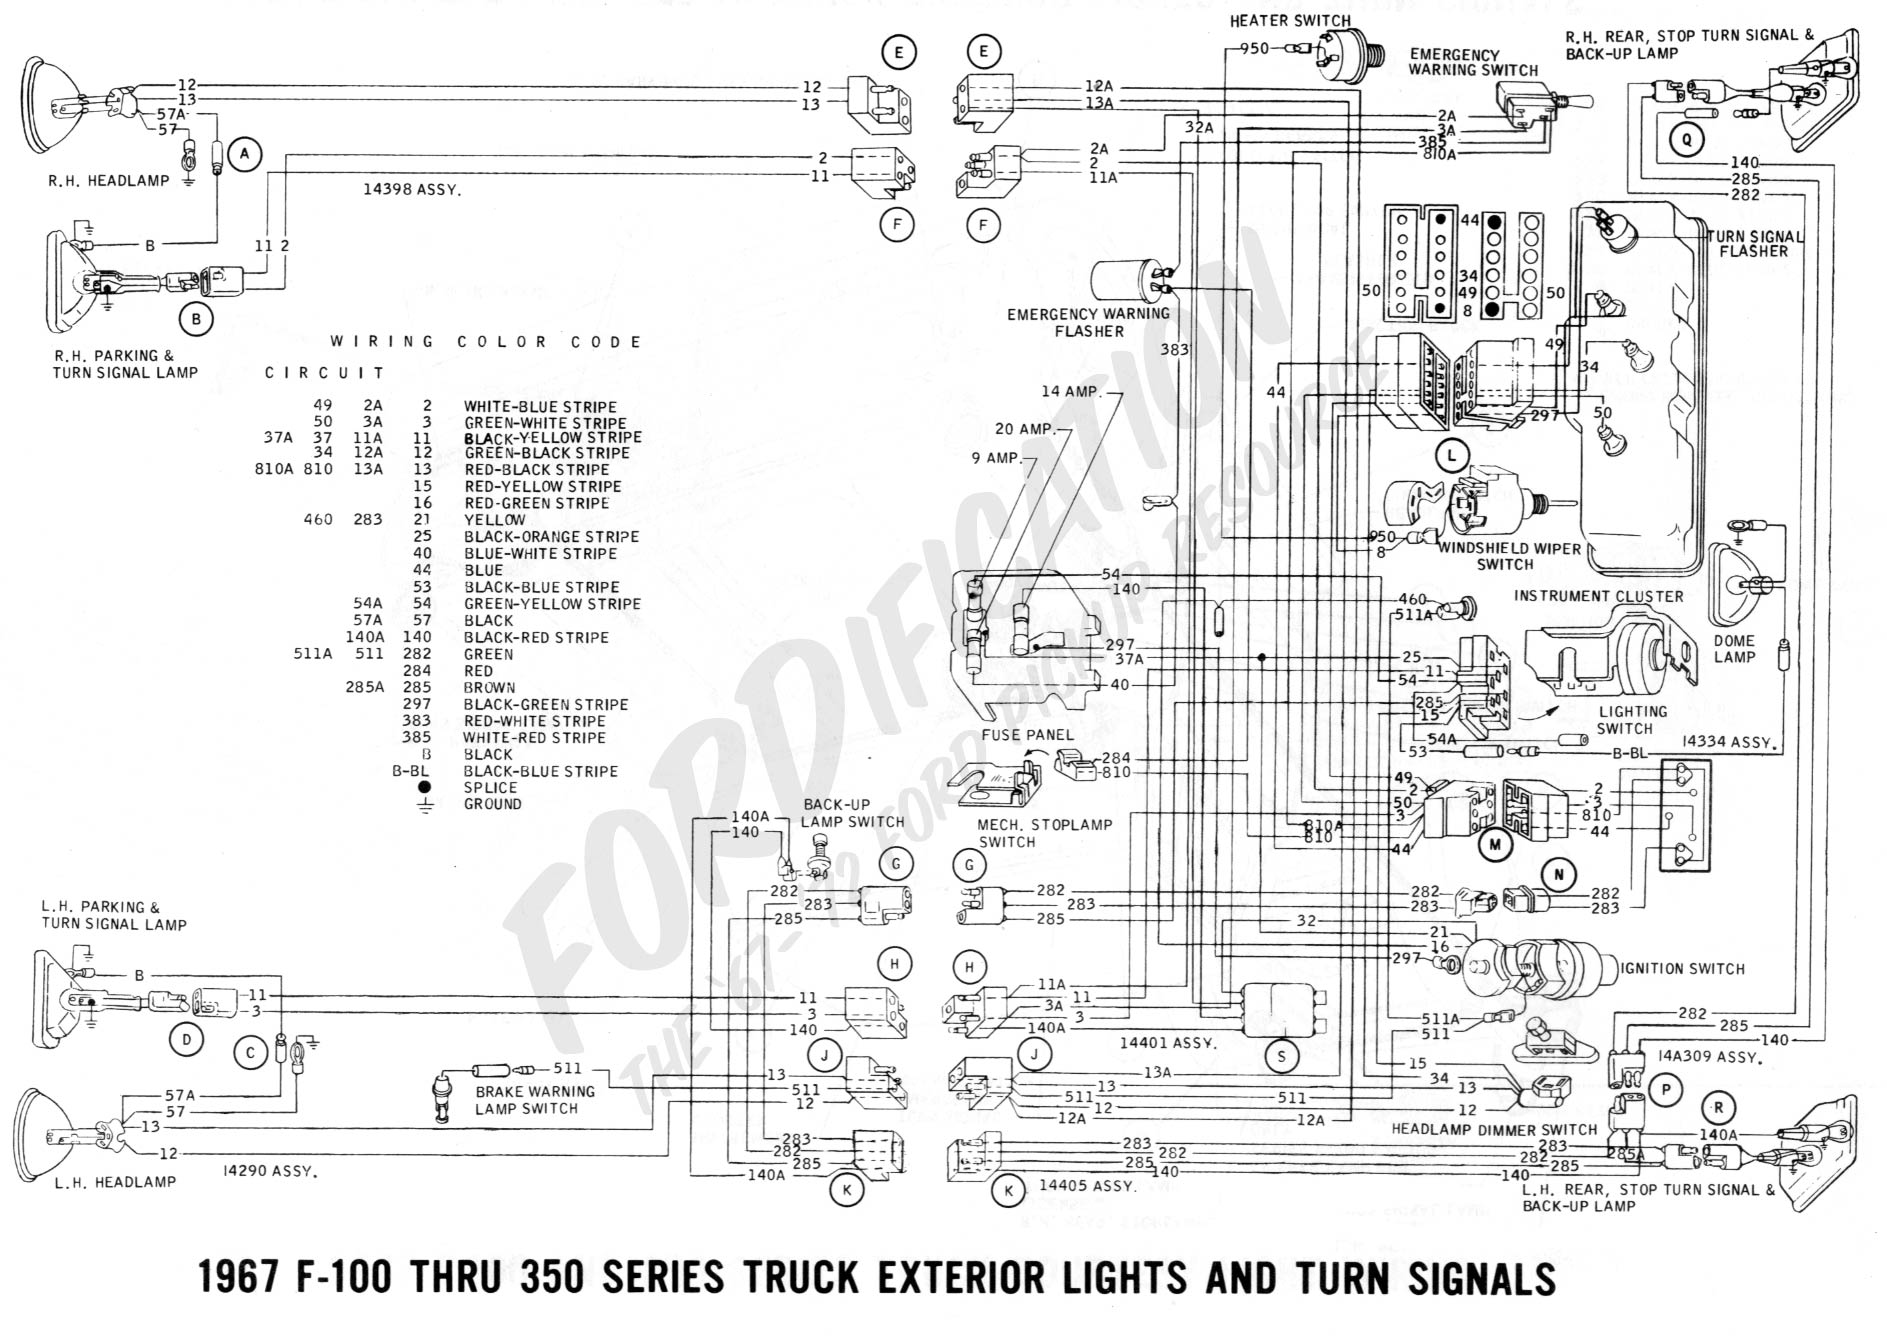 Dodge Truck Marker Light Wiring Diagram Worksheet And 1991 Alternator Highlander Reverse Detailed Schematics Rh Keyplusrubber Com 1975 1984